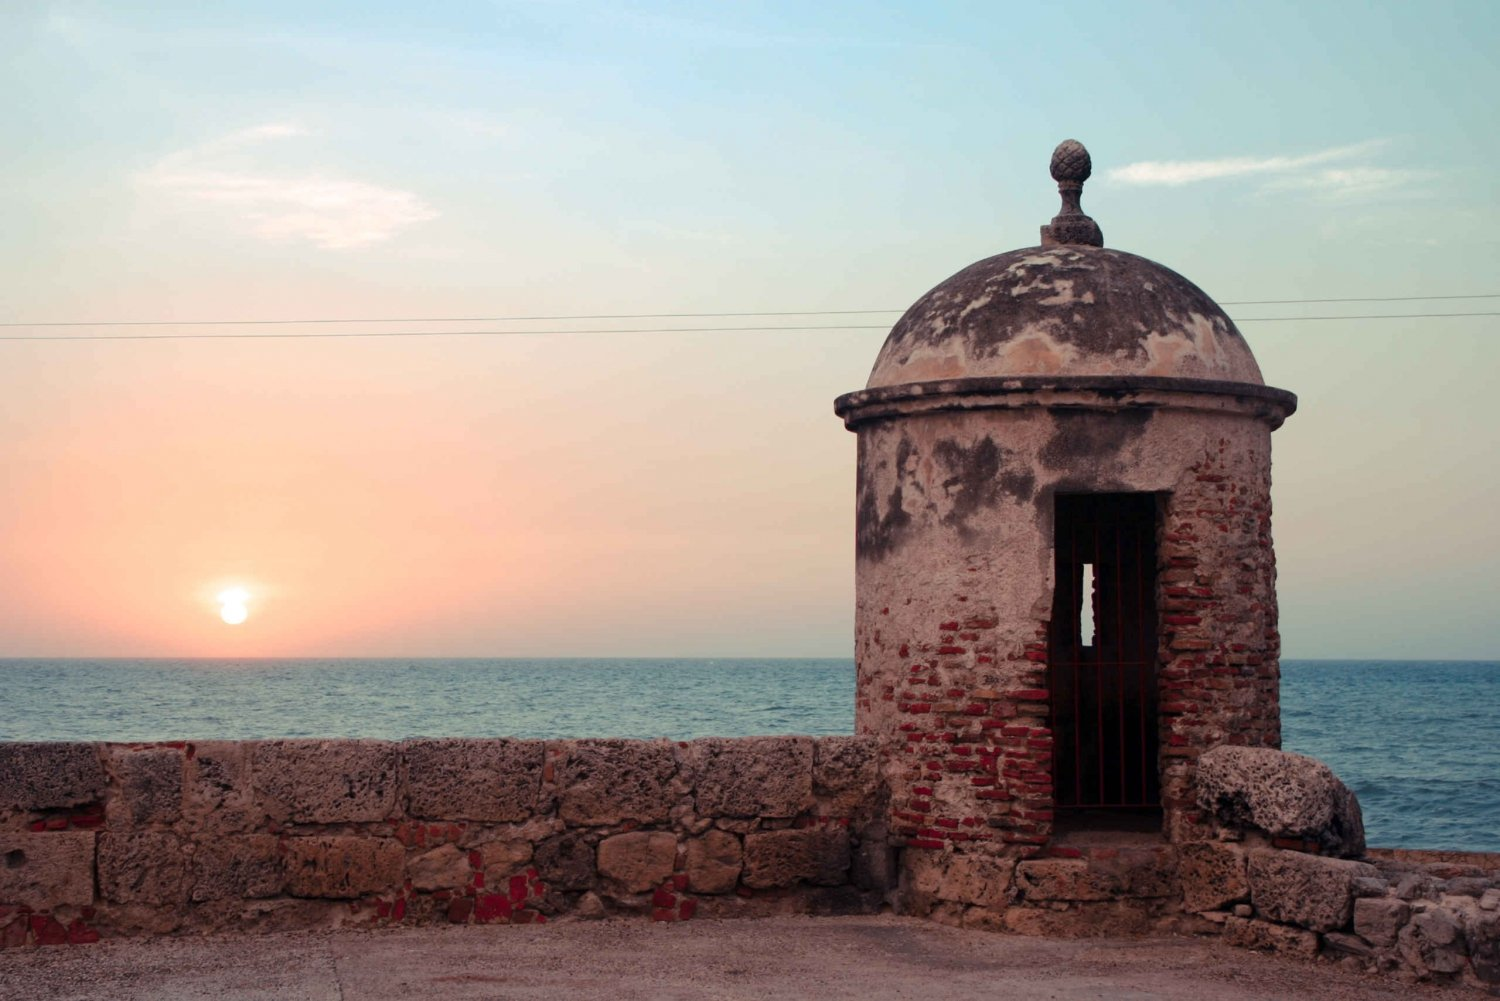 Cartagena: 4-Hour Historic Tour Including Entry Fees